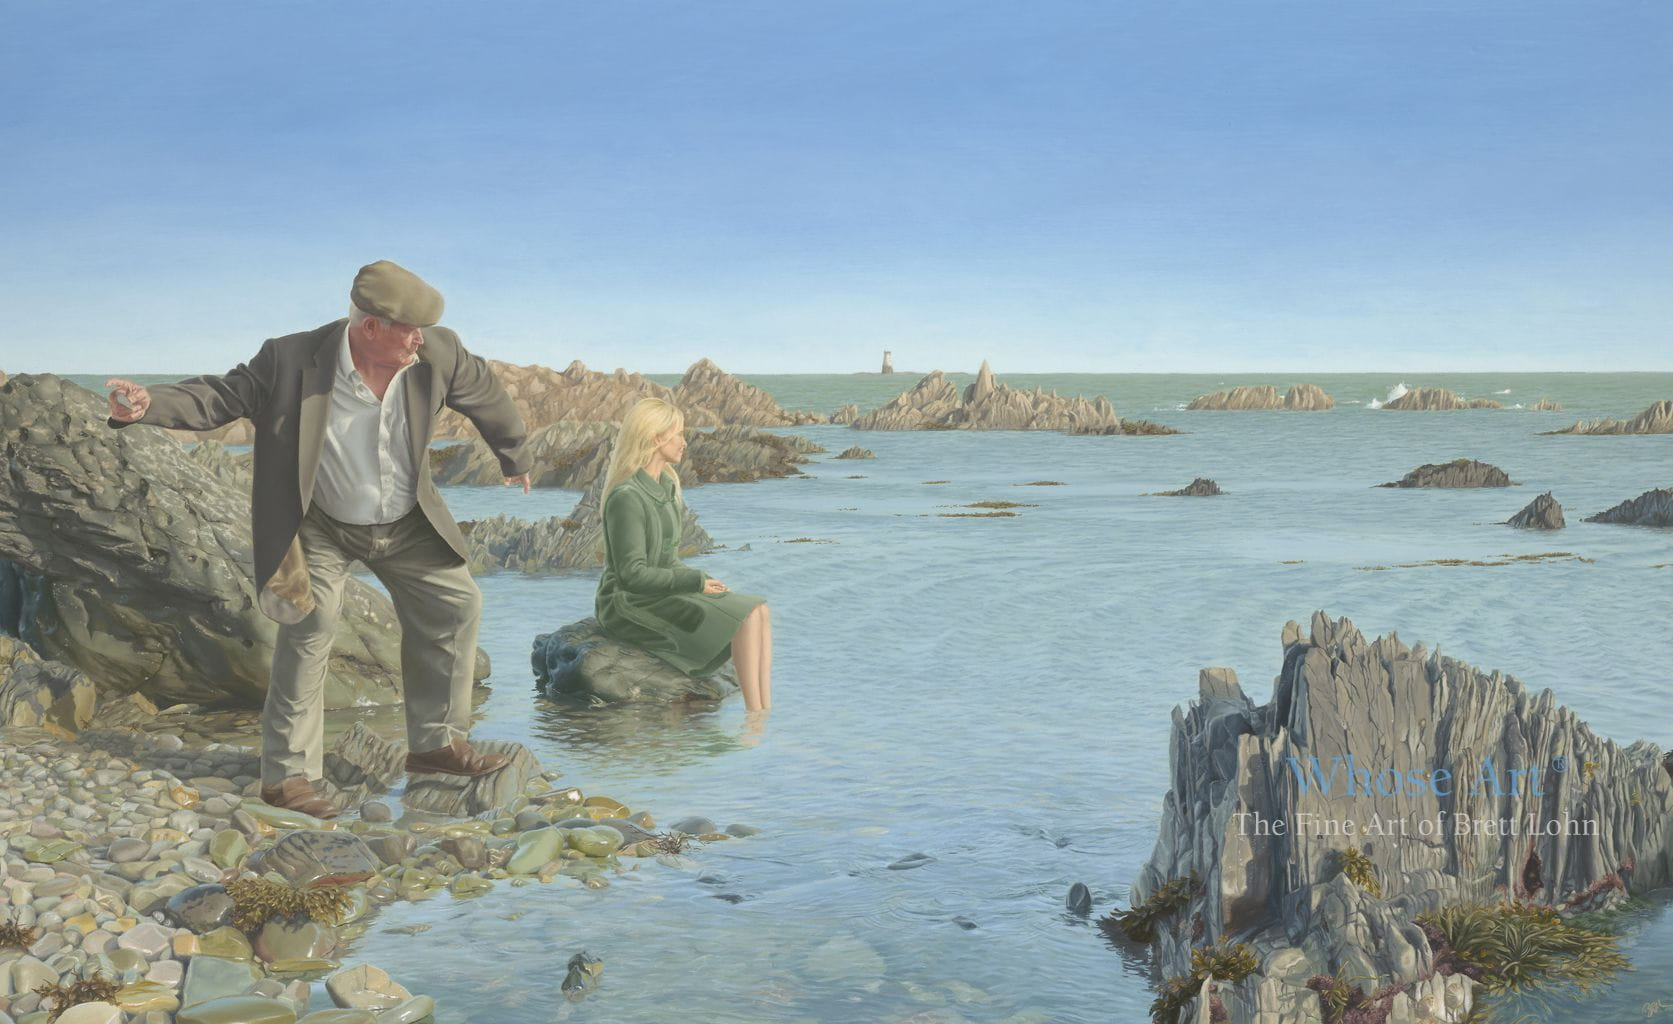 Art and health painting showing a man being cured of his health troubles as he skims a stone into the bay near a lady